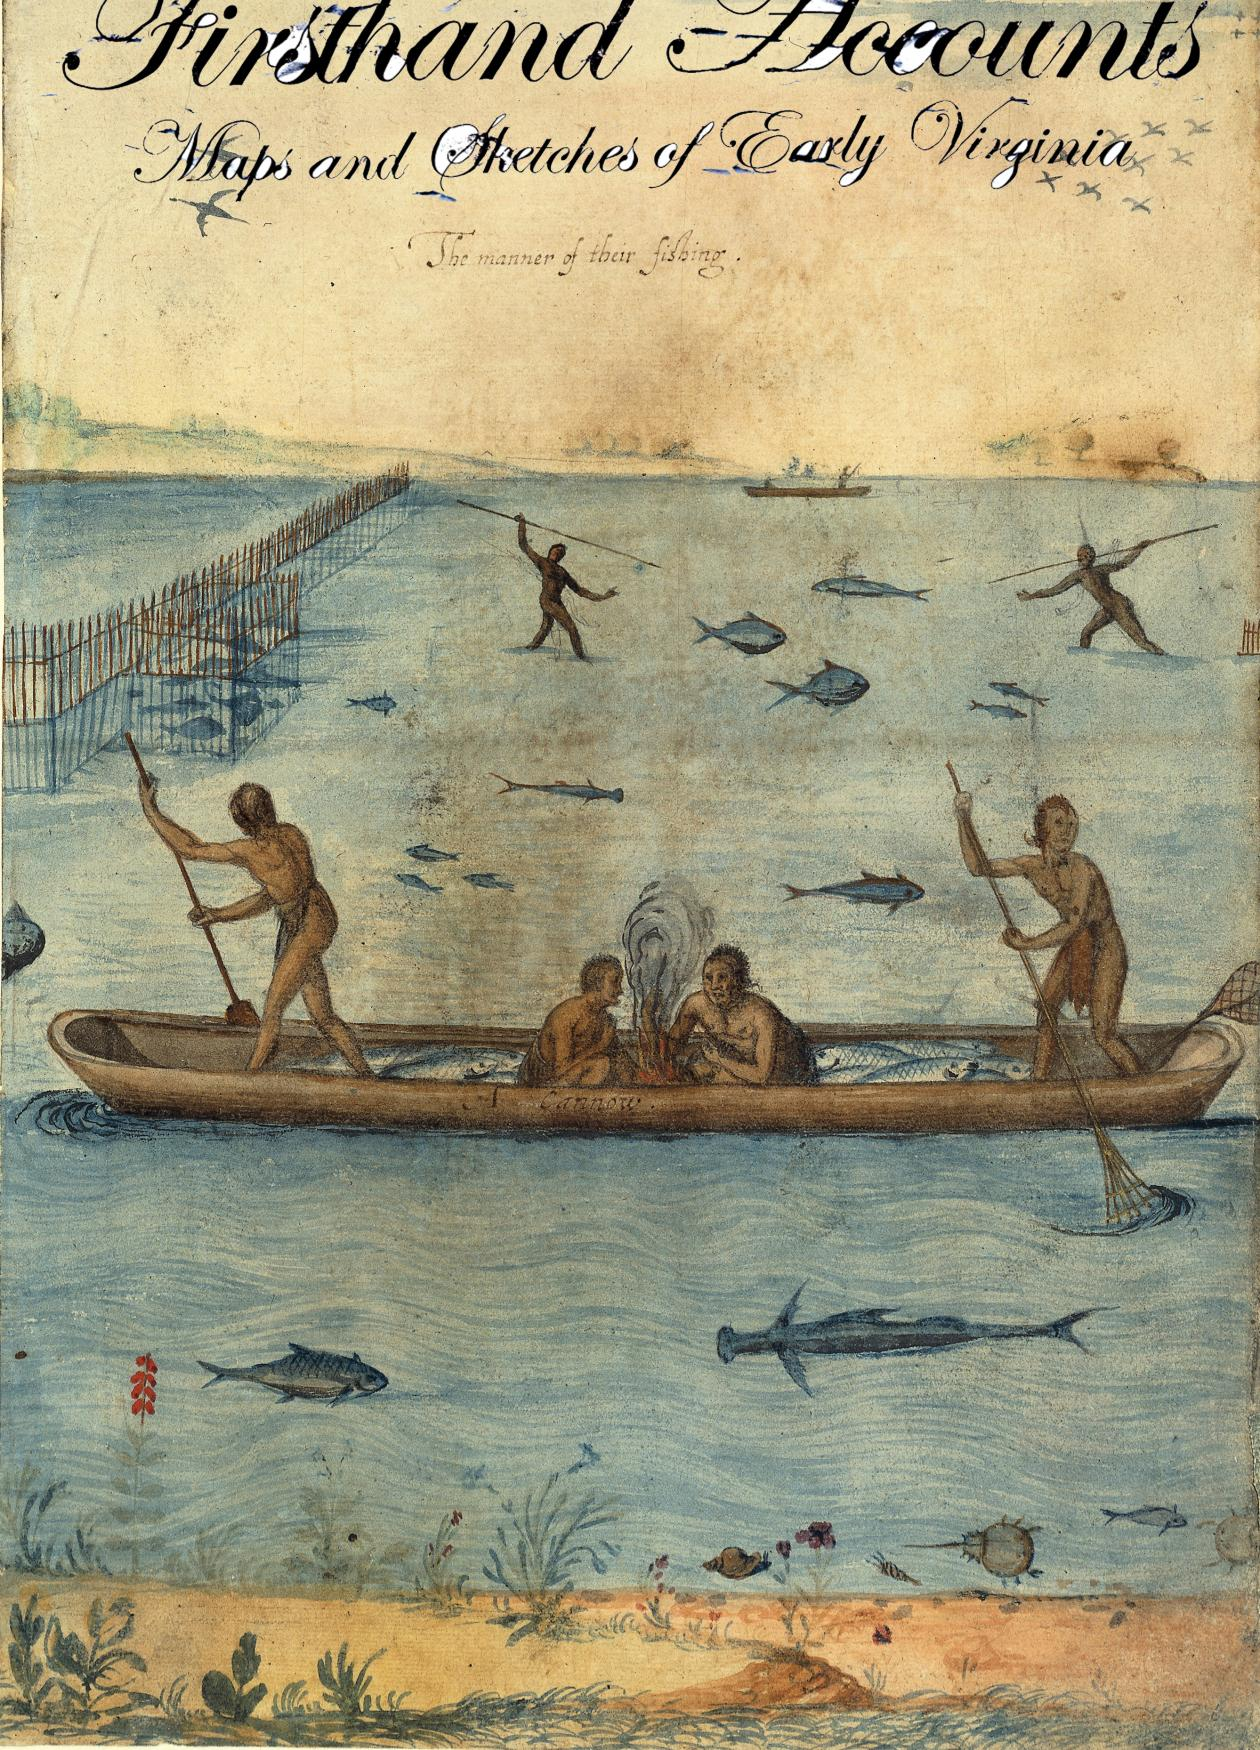 painting of Native Americans in a boat, some in water spear fishing